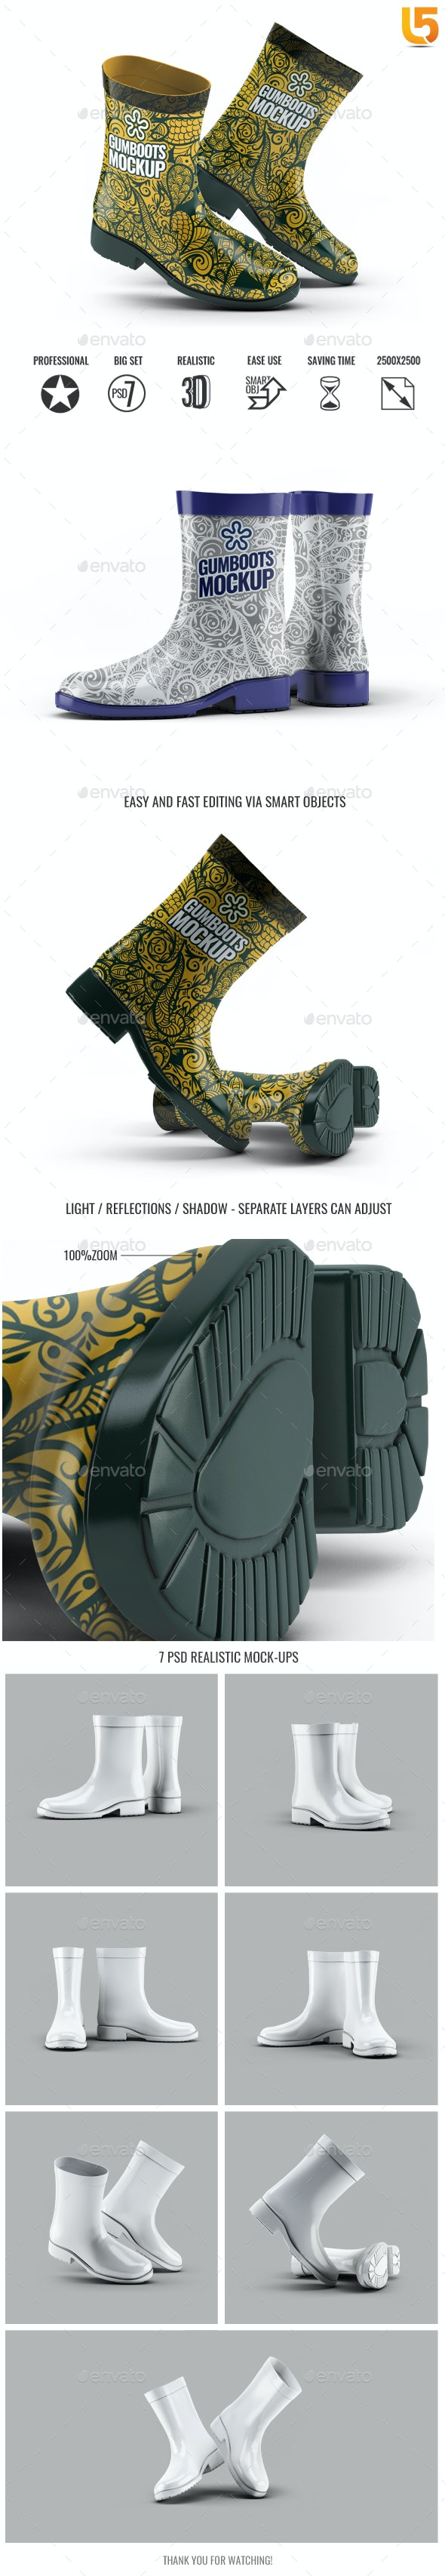 Short Ankle Gumboots Mock-Up - Miscellaneous Product Mock-Ups